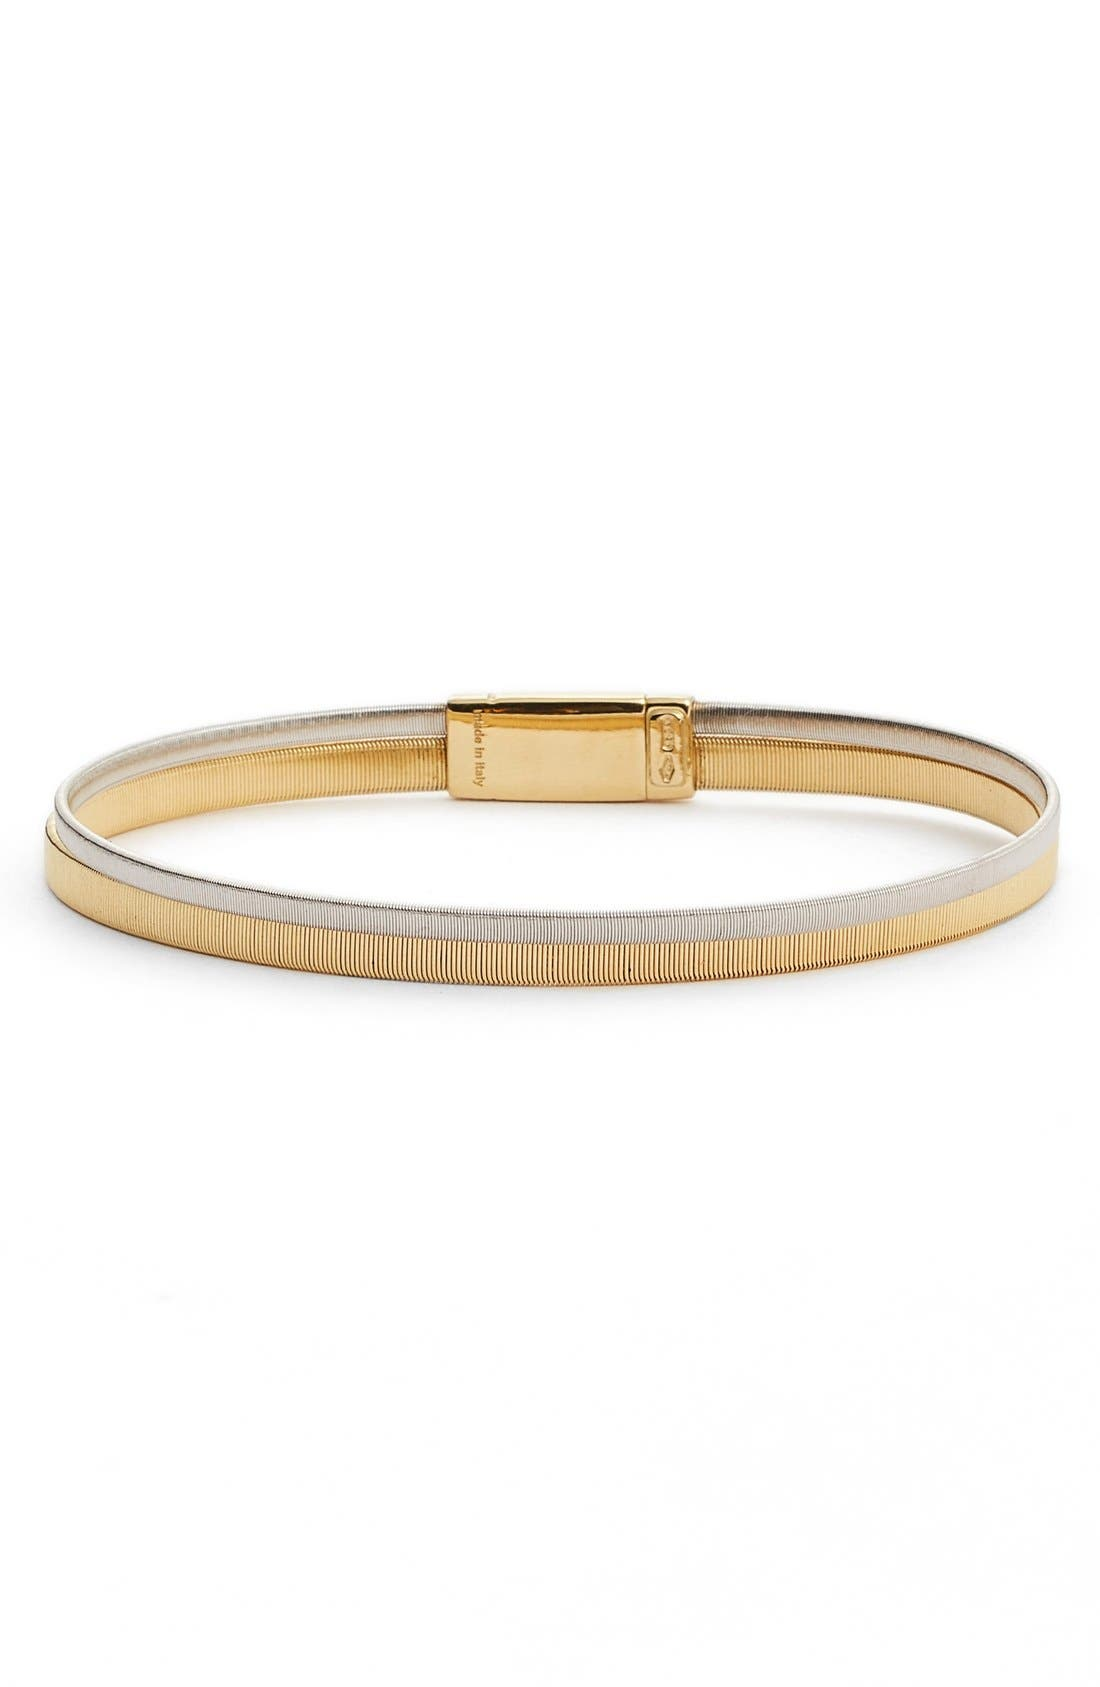 Masai Stack Bracelet,                             Main thumbnail 1, color,                             YELLOW GOLD